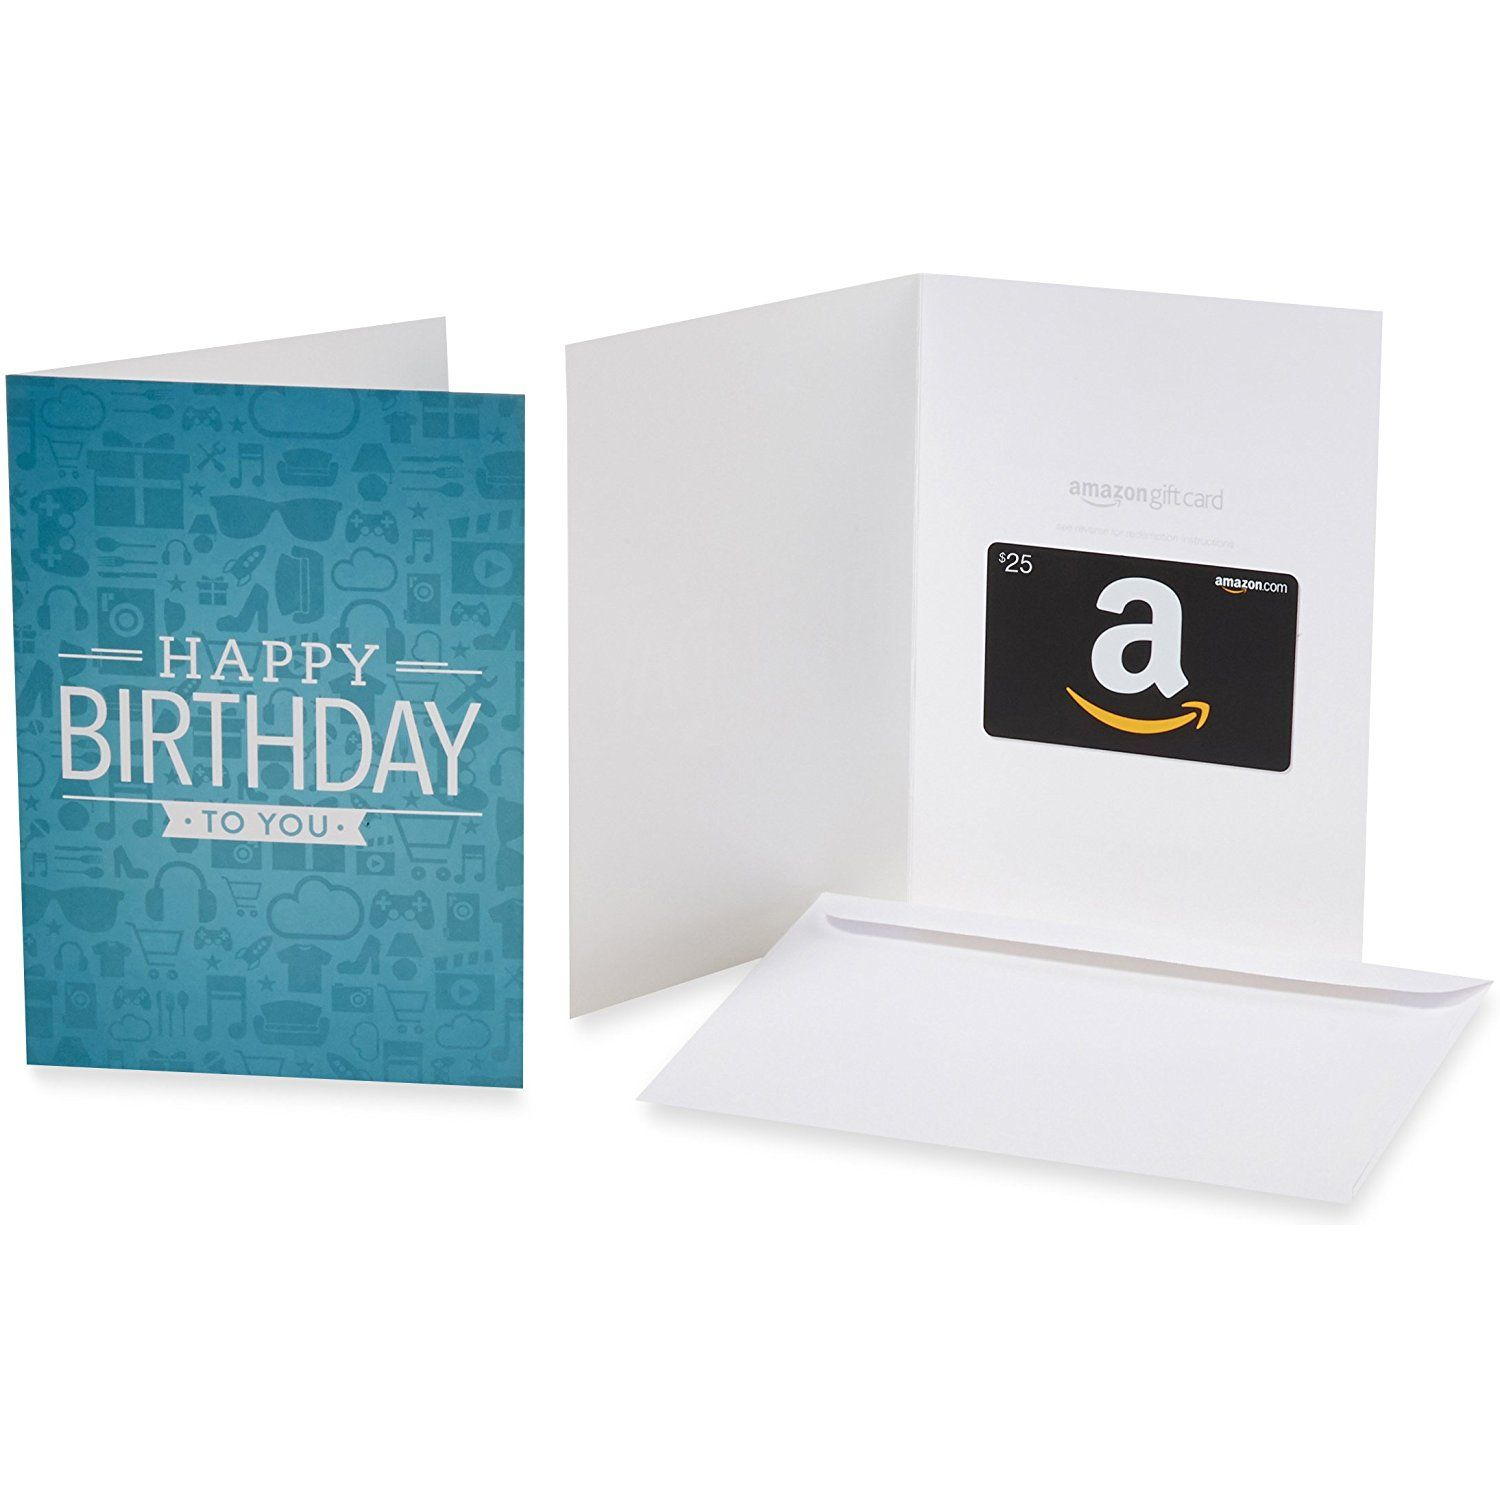 Amazon Gift Card In A Greeting Various Designs GiftCards Birthday